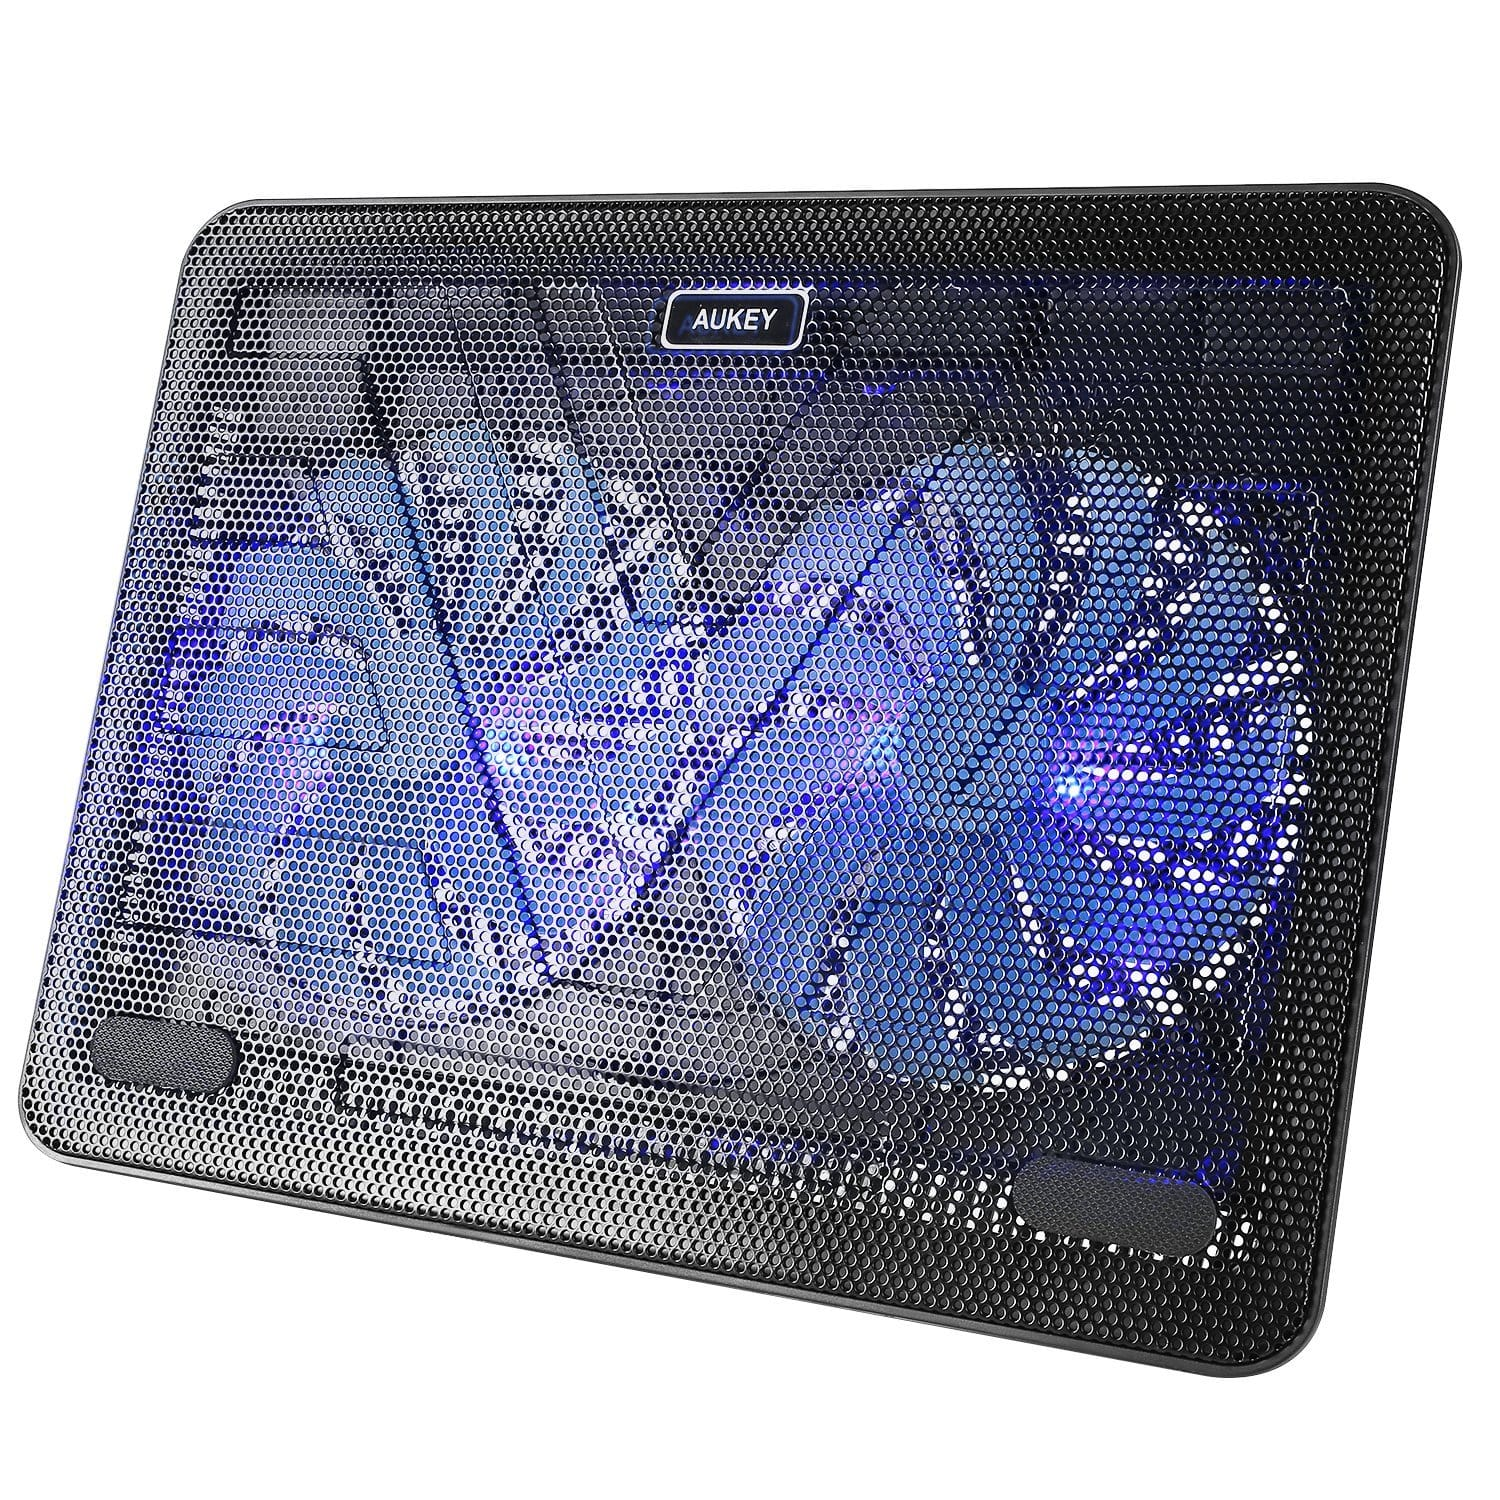 Aukey Laptop Cooling Pads w LEDs Slickdeals